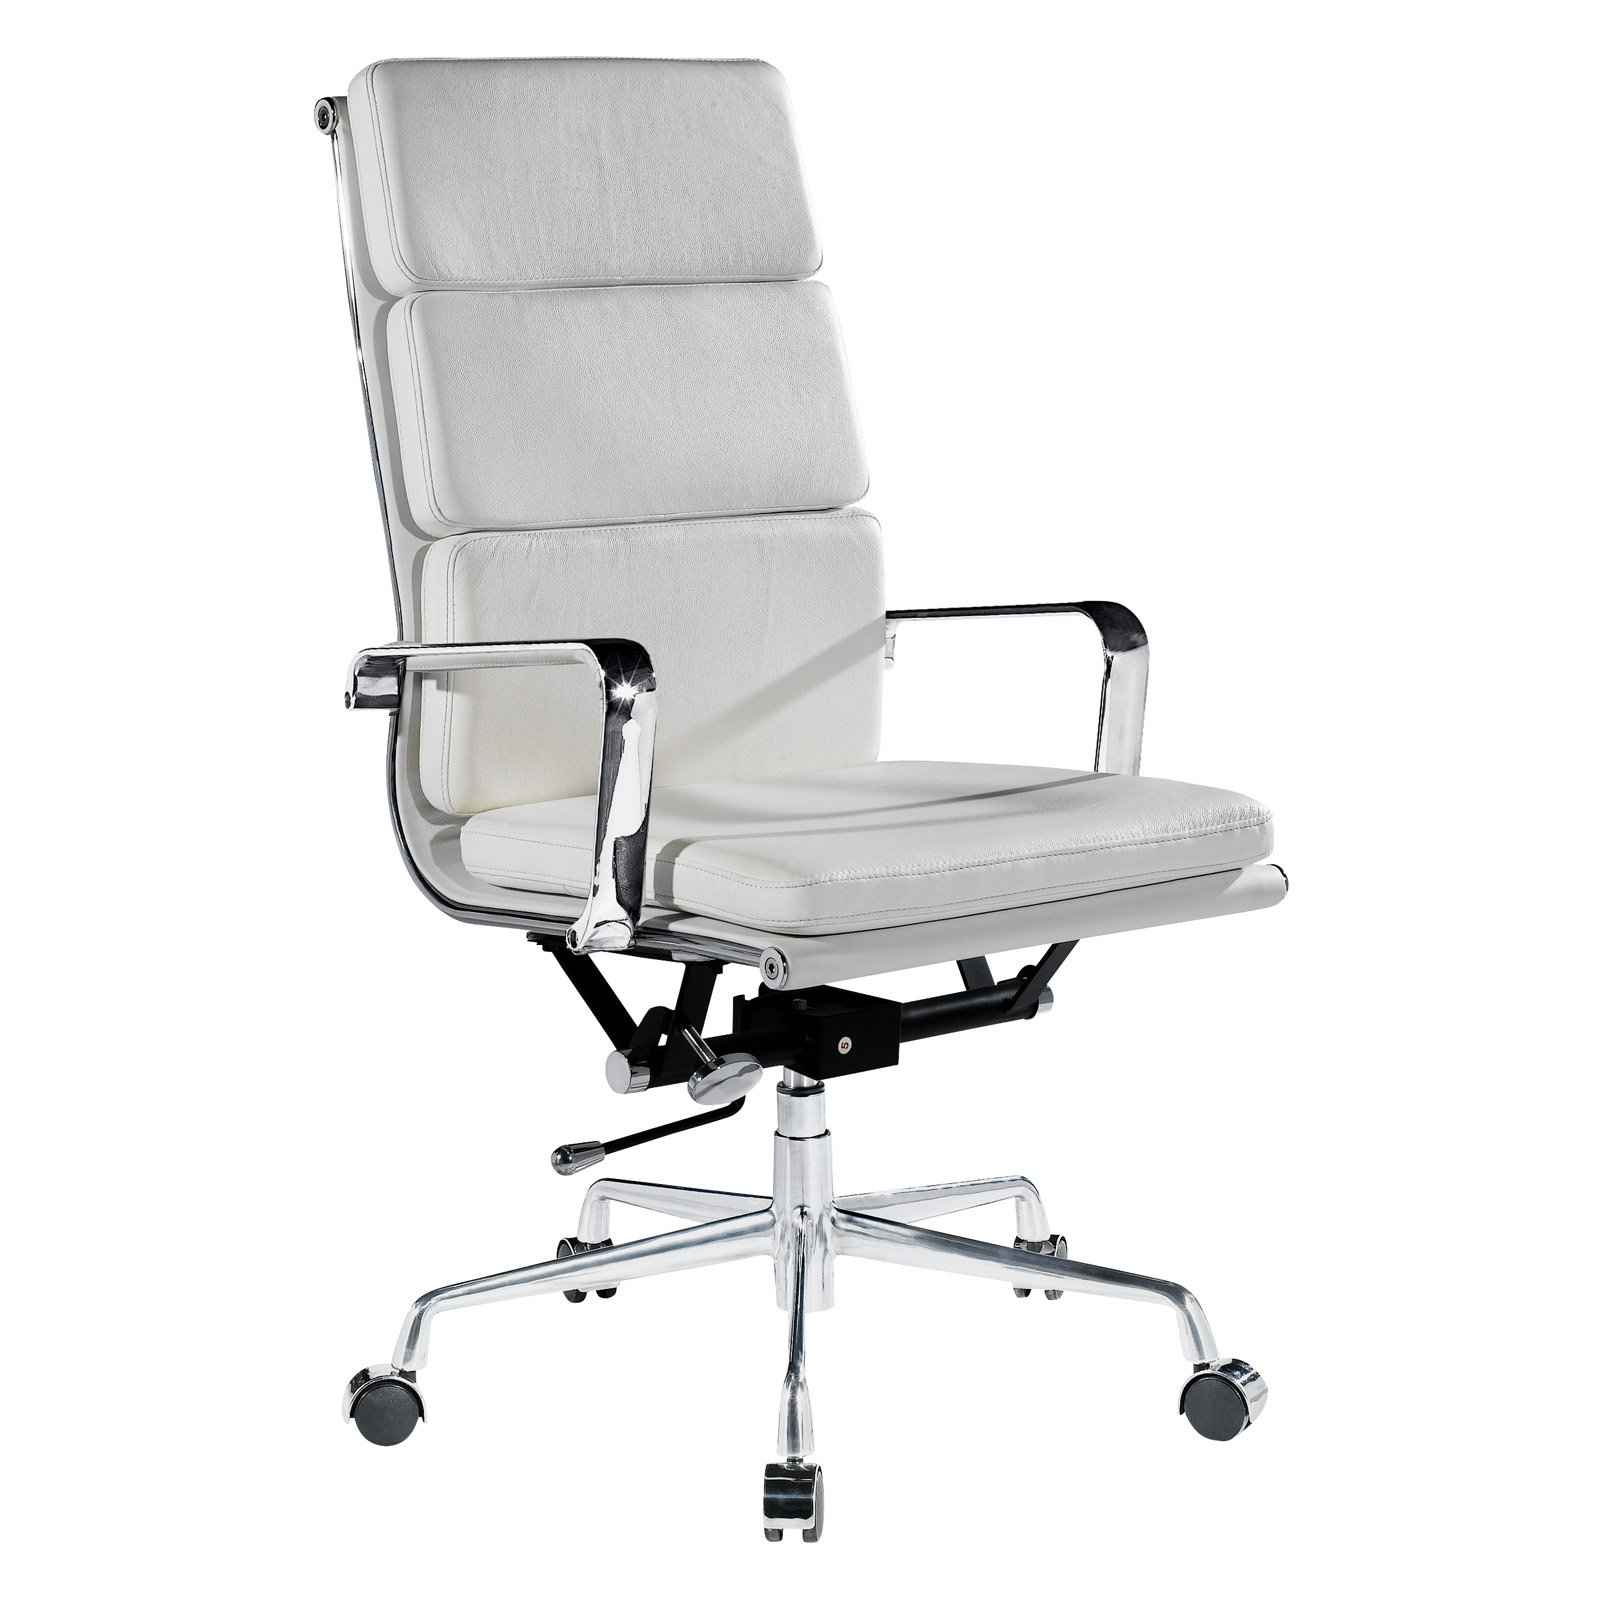 Executive leather office chair office furniture for Contemporary office chairs modern